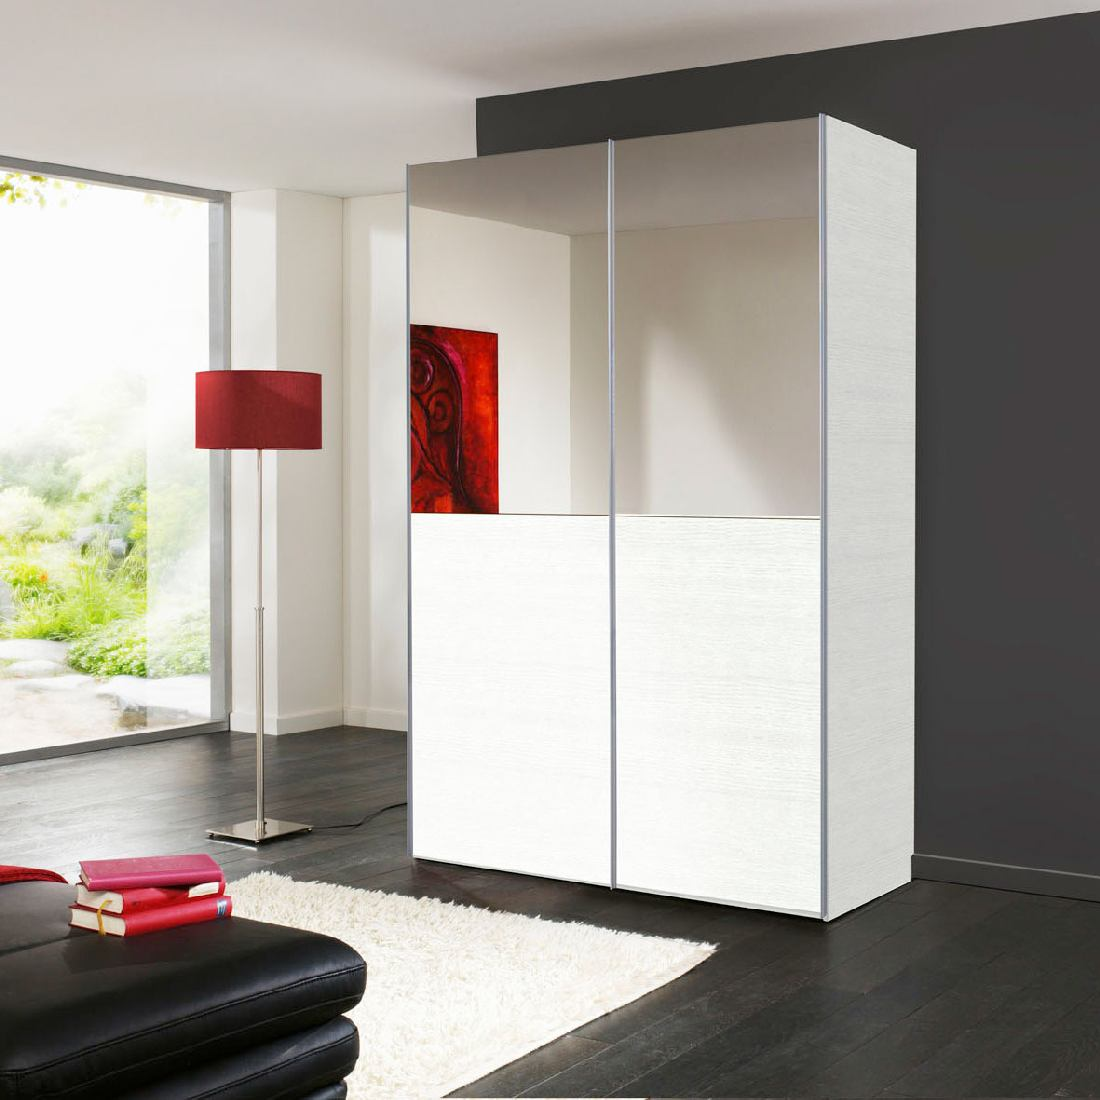 schwebet renschrank 2 t rig spiegel struktur wei. Black Bedroom Furniture Sets. Home Design Ideas